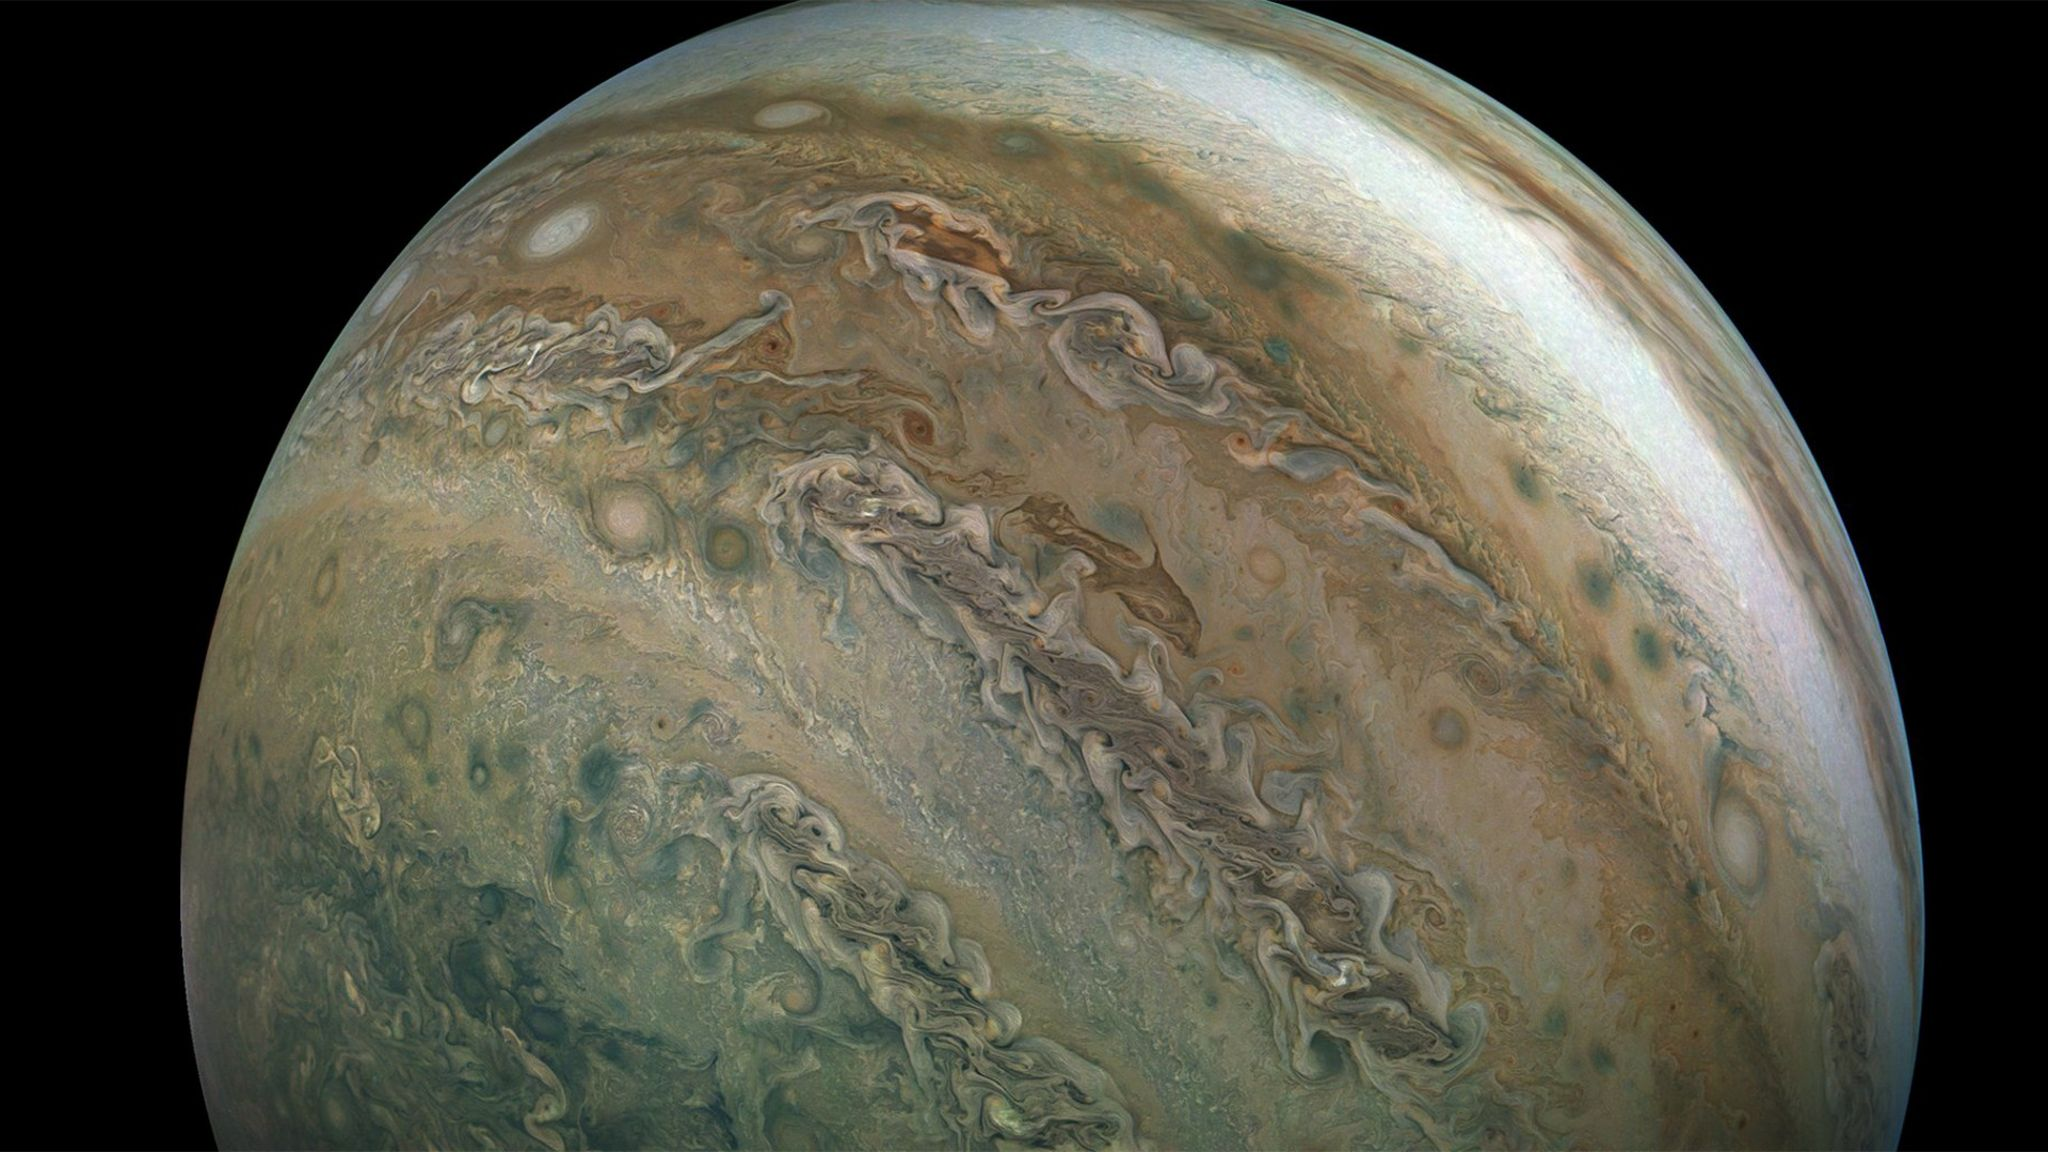 A Dolphin in Jupiter's Clouds